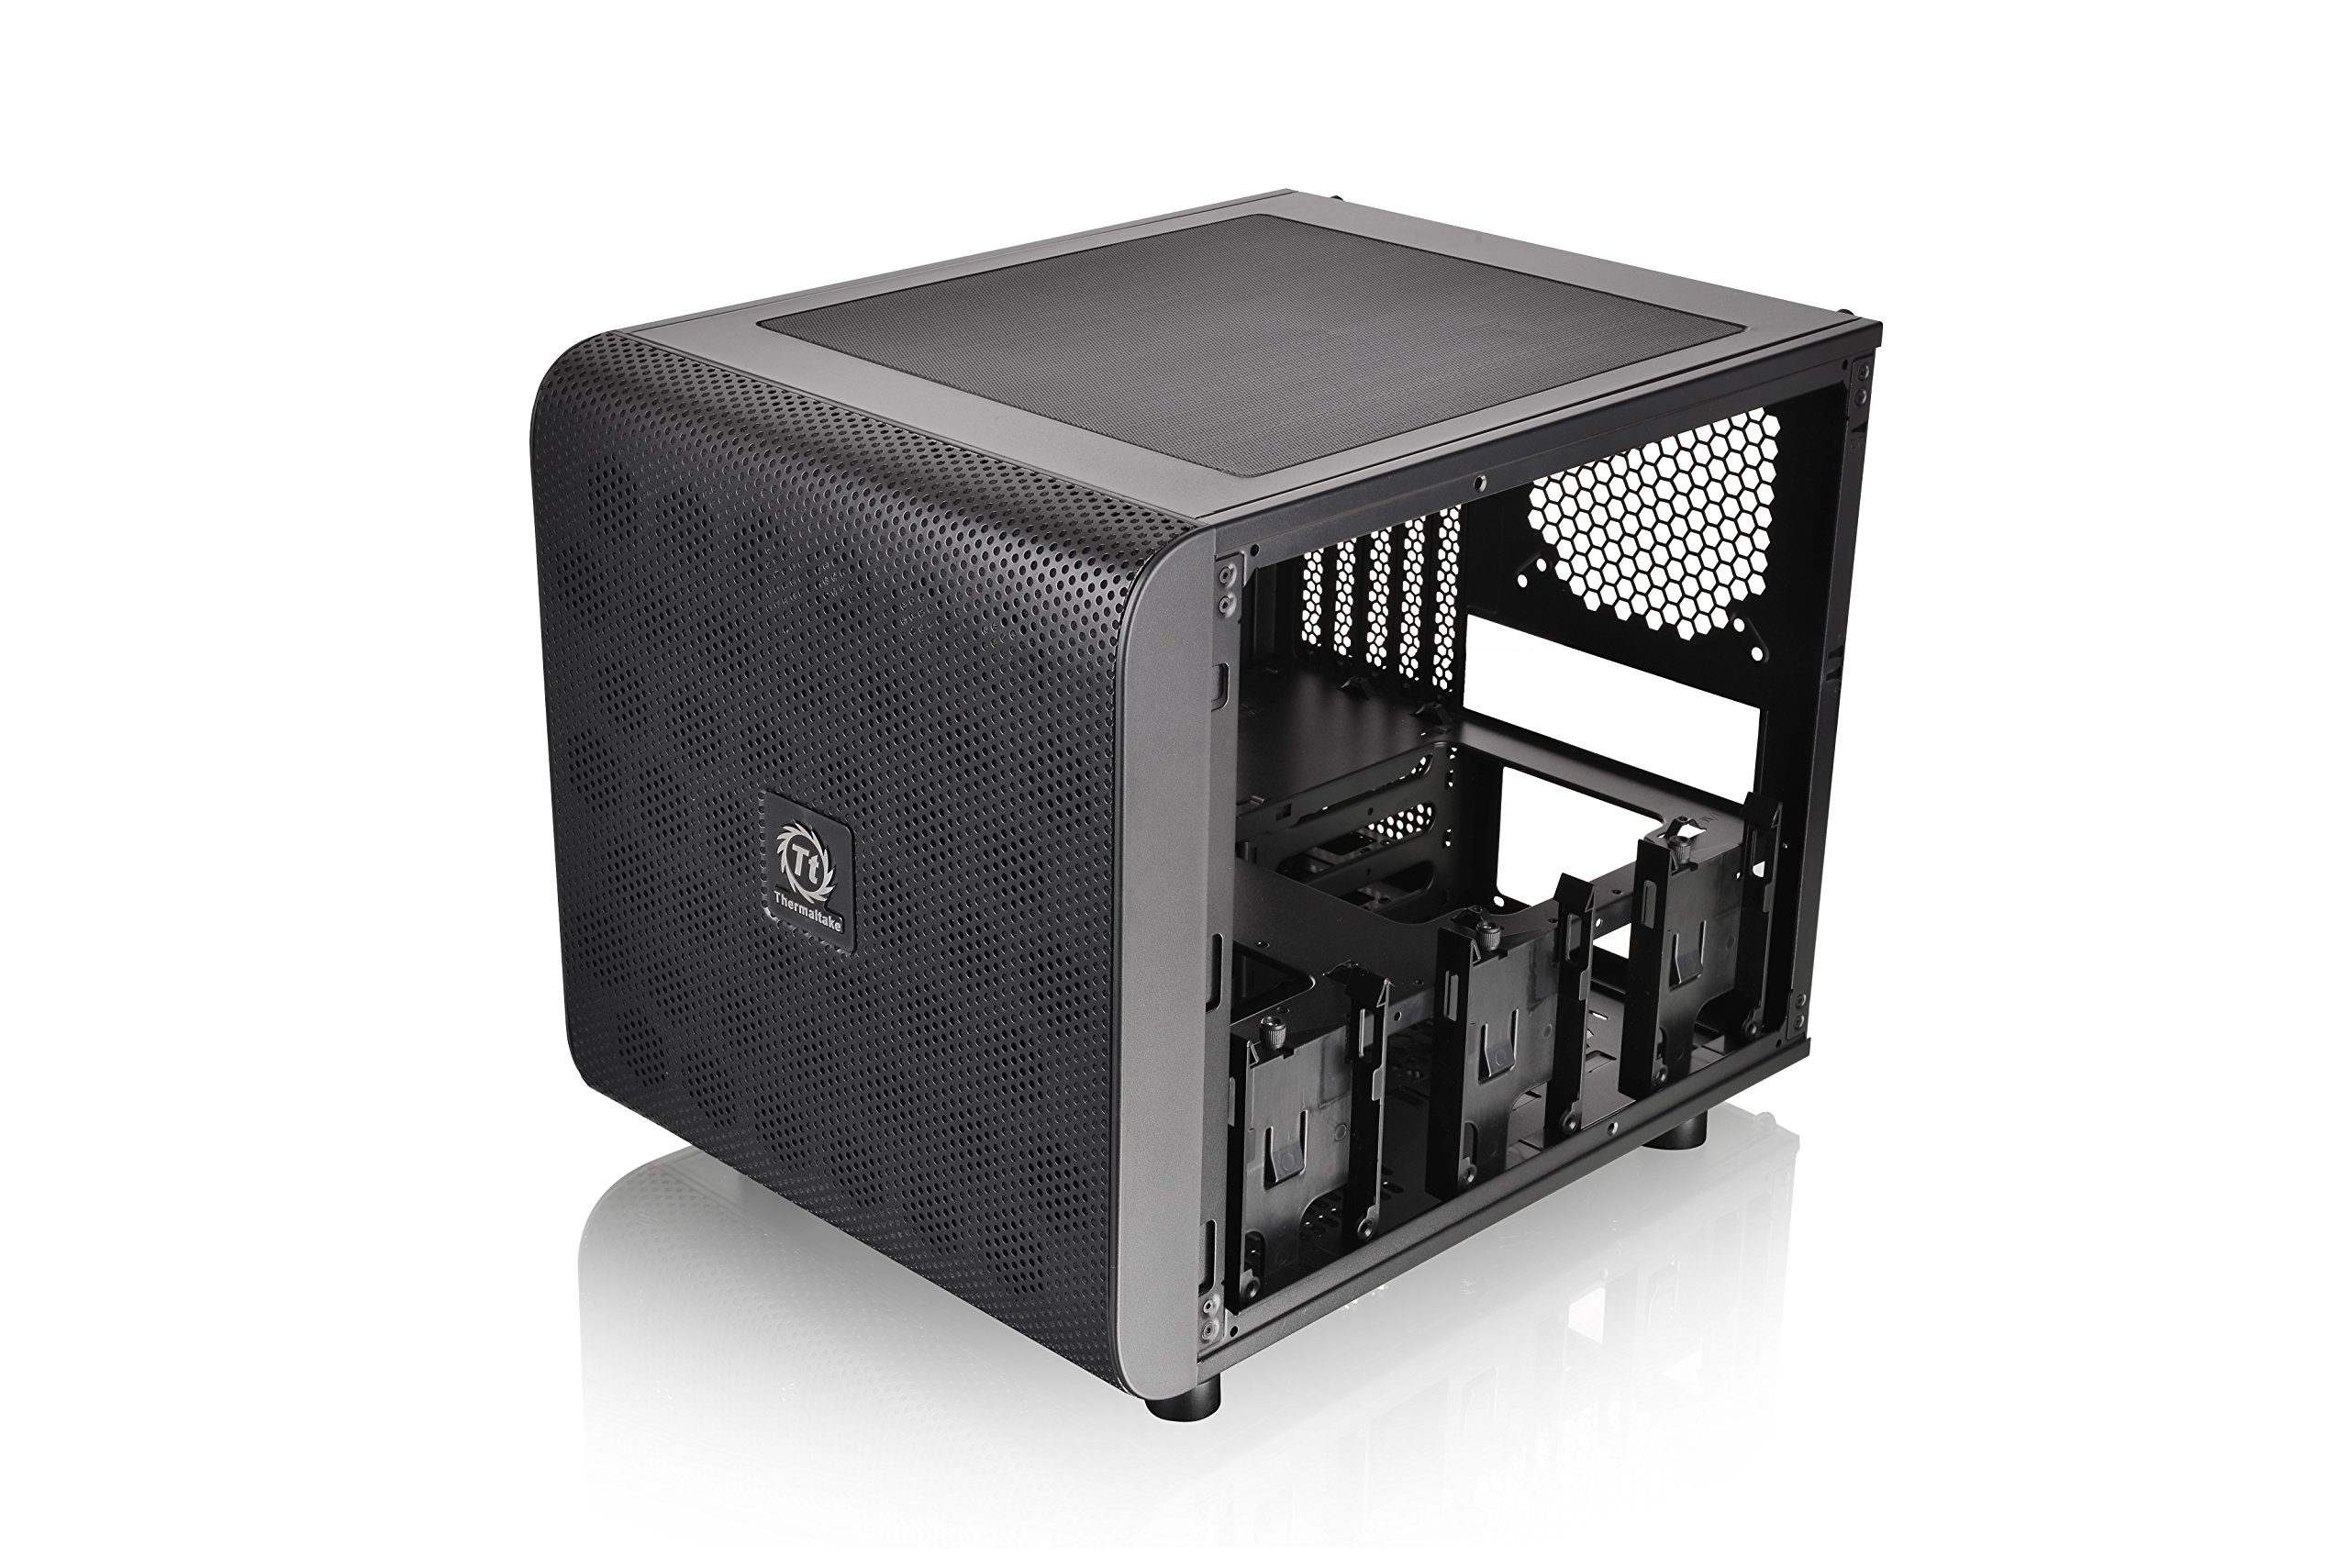 Thermaltake Core V21 SPCC Micro ATX, Mini ITX Cube Gaming Computer Case Chassis, Small Form Factor Builds, 200mm Front Fan Pre-installed, CA-1D5-00S1WN-00 by Thermaltake (Image #17)